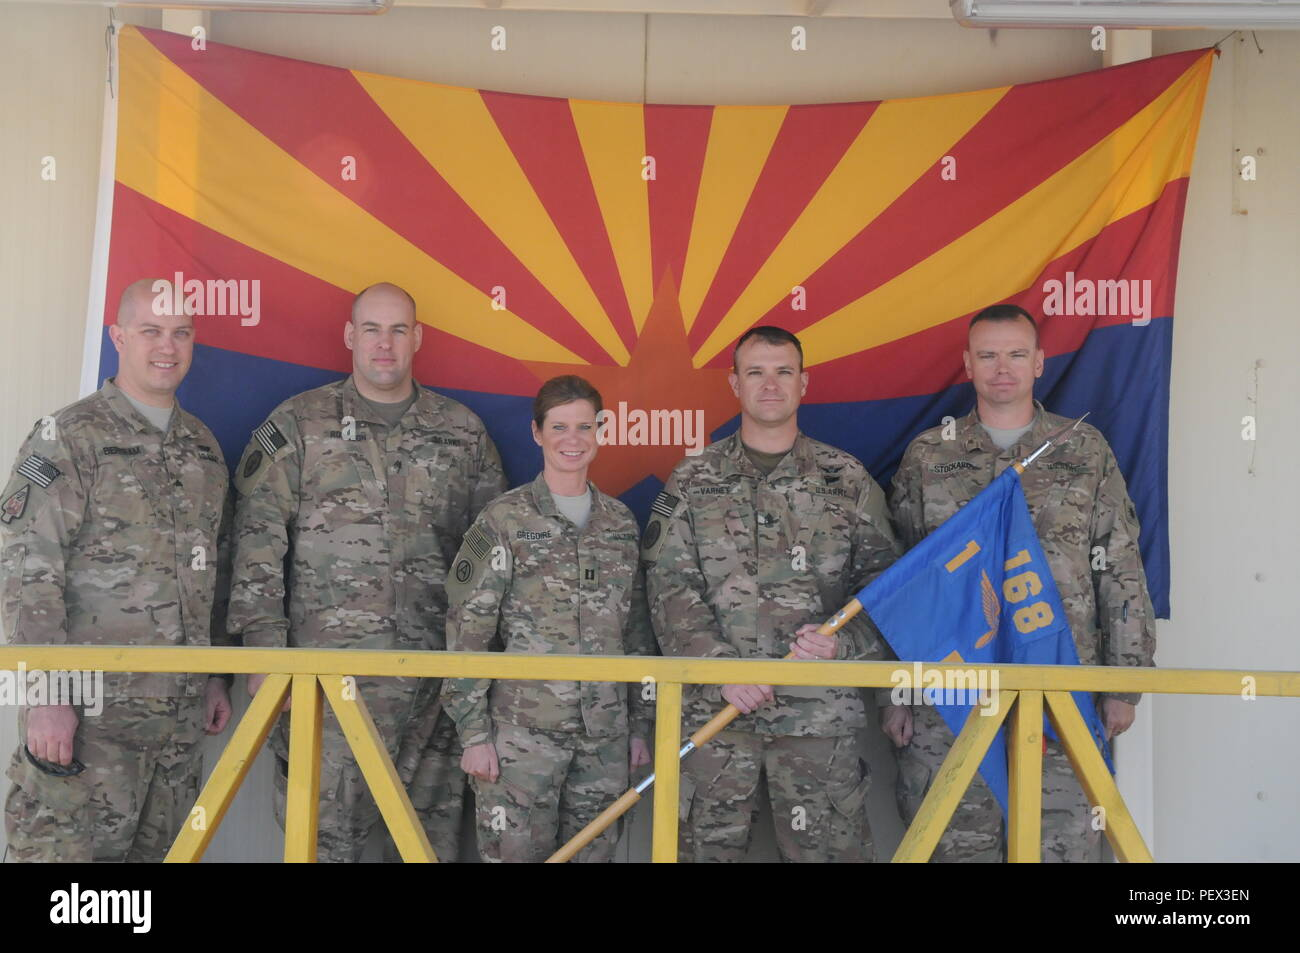 Nashville, Tenn., resident Sgt. Brian Bertram, Glendale, Ariz., resident Sgt. Nicholas Robinson, San Tan Valley, Ariz., resident Cpt. Sherri Gregoire, Tucson, Ariz., resident 1st Sgt. Trevor Varney, and Phoenix resident Sgt. 1st Class Kevin Stockard gather outside their company headquarters for Company F, 1st Battalion, 168th Air Traffic Services, 40th Combat Aviation Brigade, at Camp Buehring Kuwait, Feb. 8. Capt. Gregoire and 1st Sgt. Varney are the command team for Company F, which provides Air Traffic Services for all friendly aviation assets. (Photo by 1st Lt. Aaron DeCapua, 40th Combat A - Stock Image